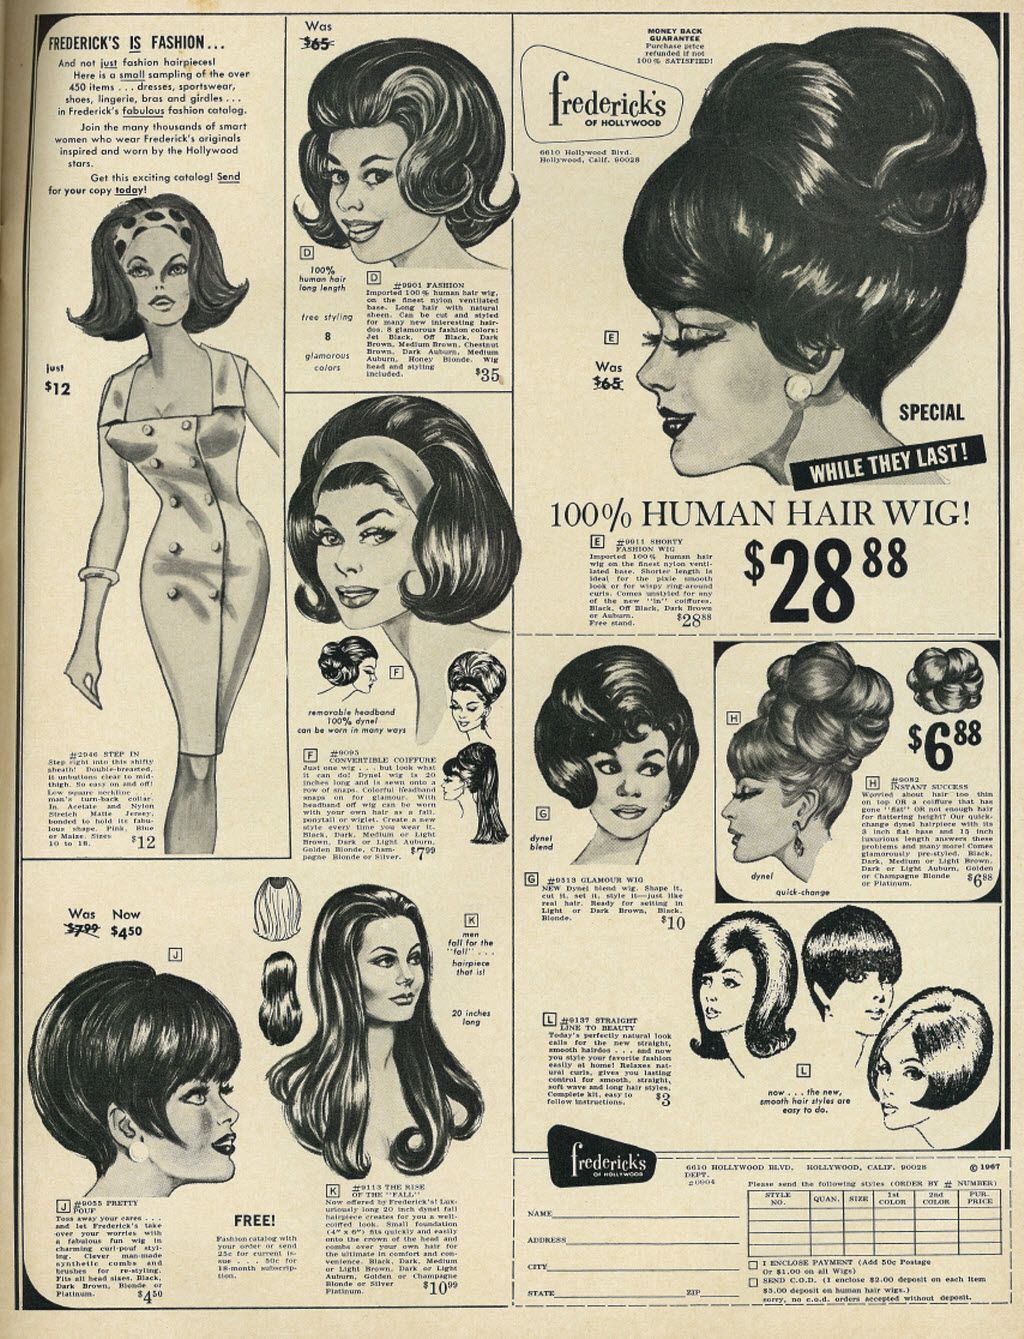 19 Vintage Ads For Fashion Wigs And Hairpieces From The 1960s And